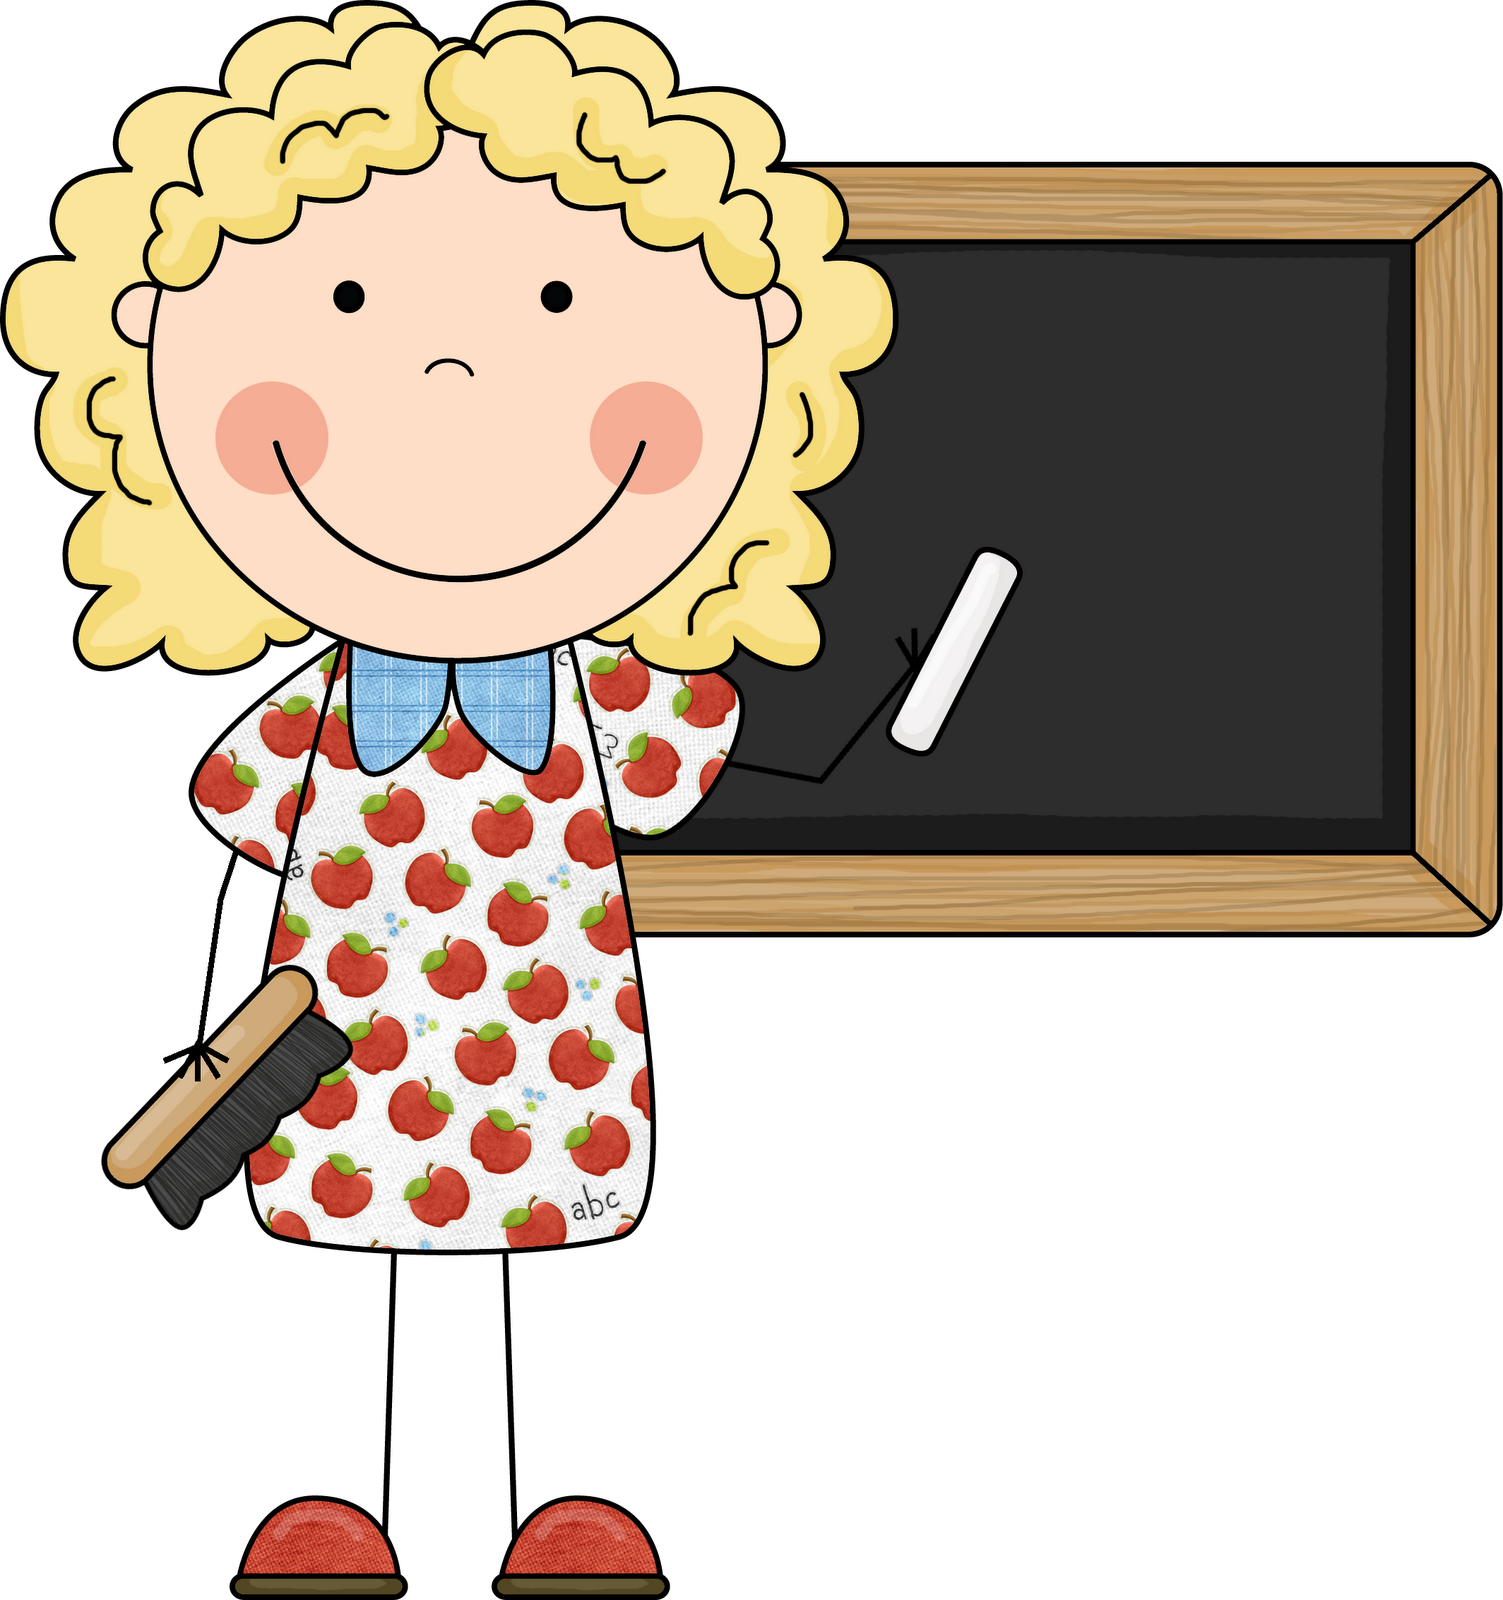 Clipart teacher clipart images gallery for free download.